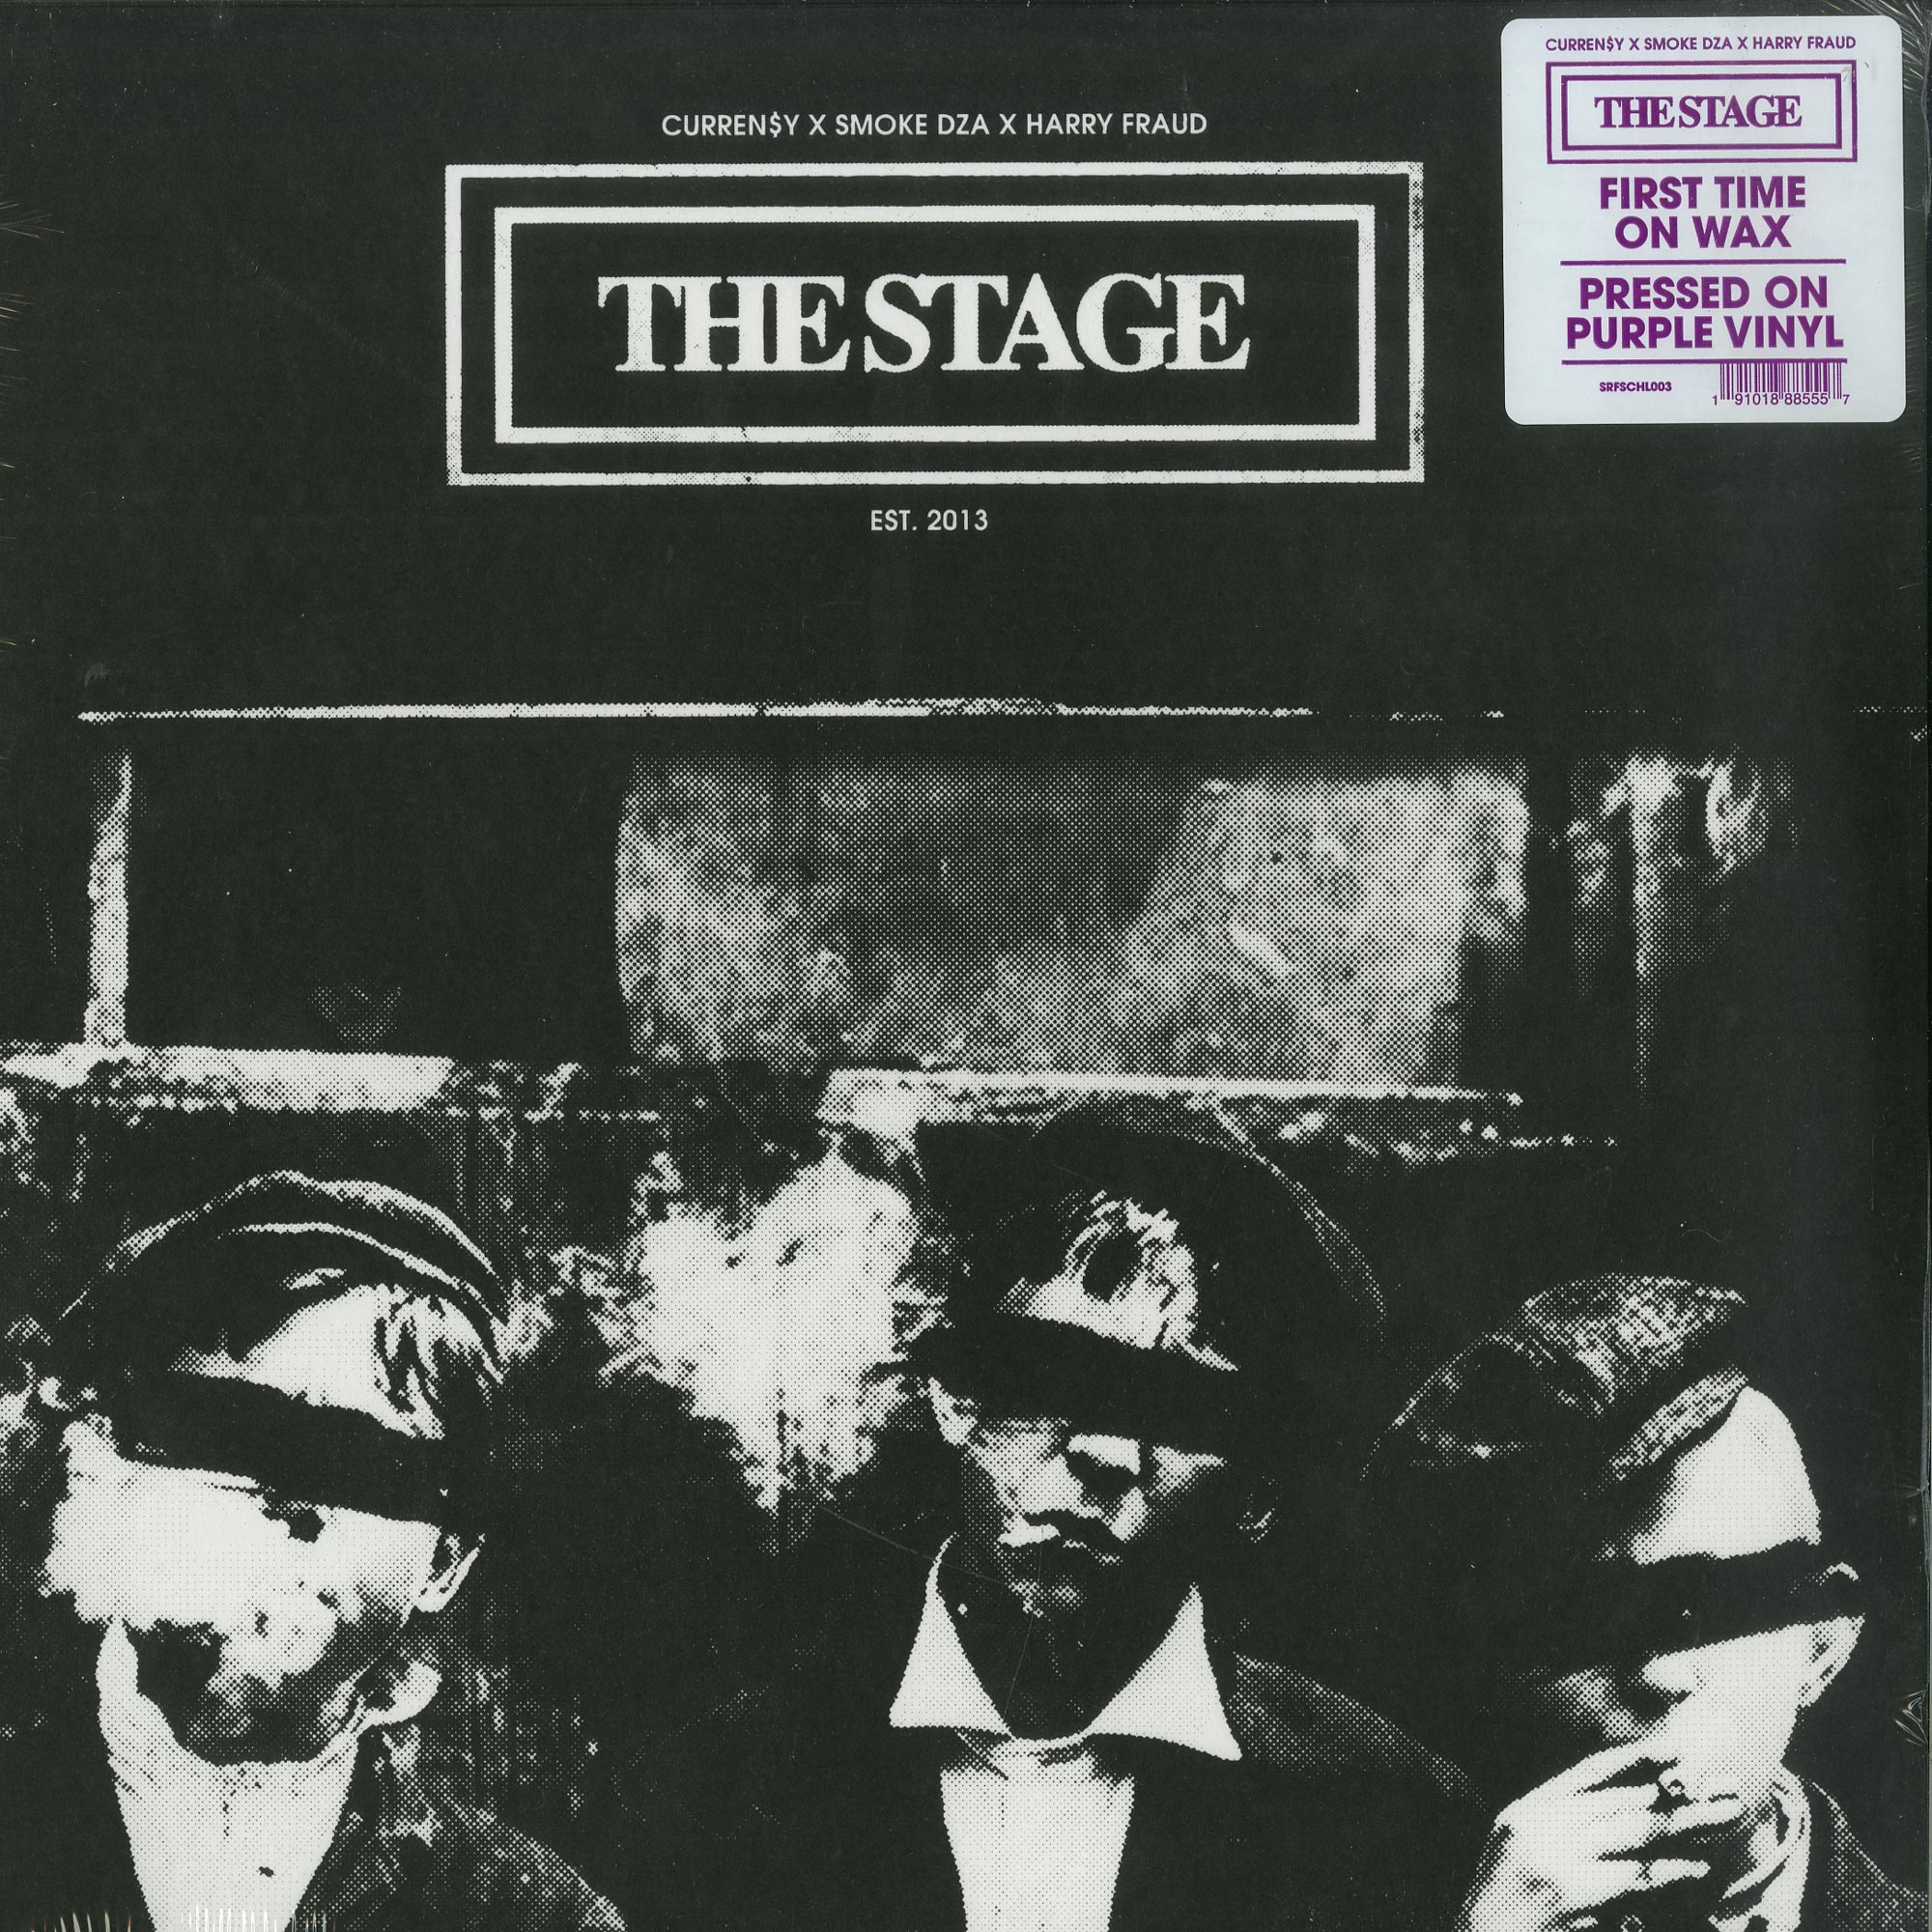 Curren$y x Smoke DZA x Harry Fraud - THE STAGE